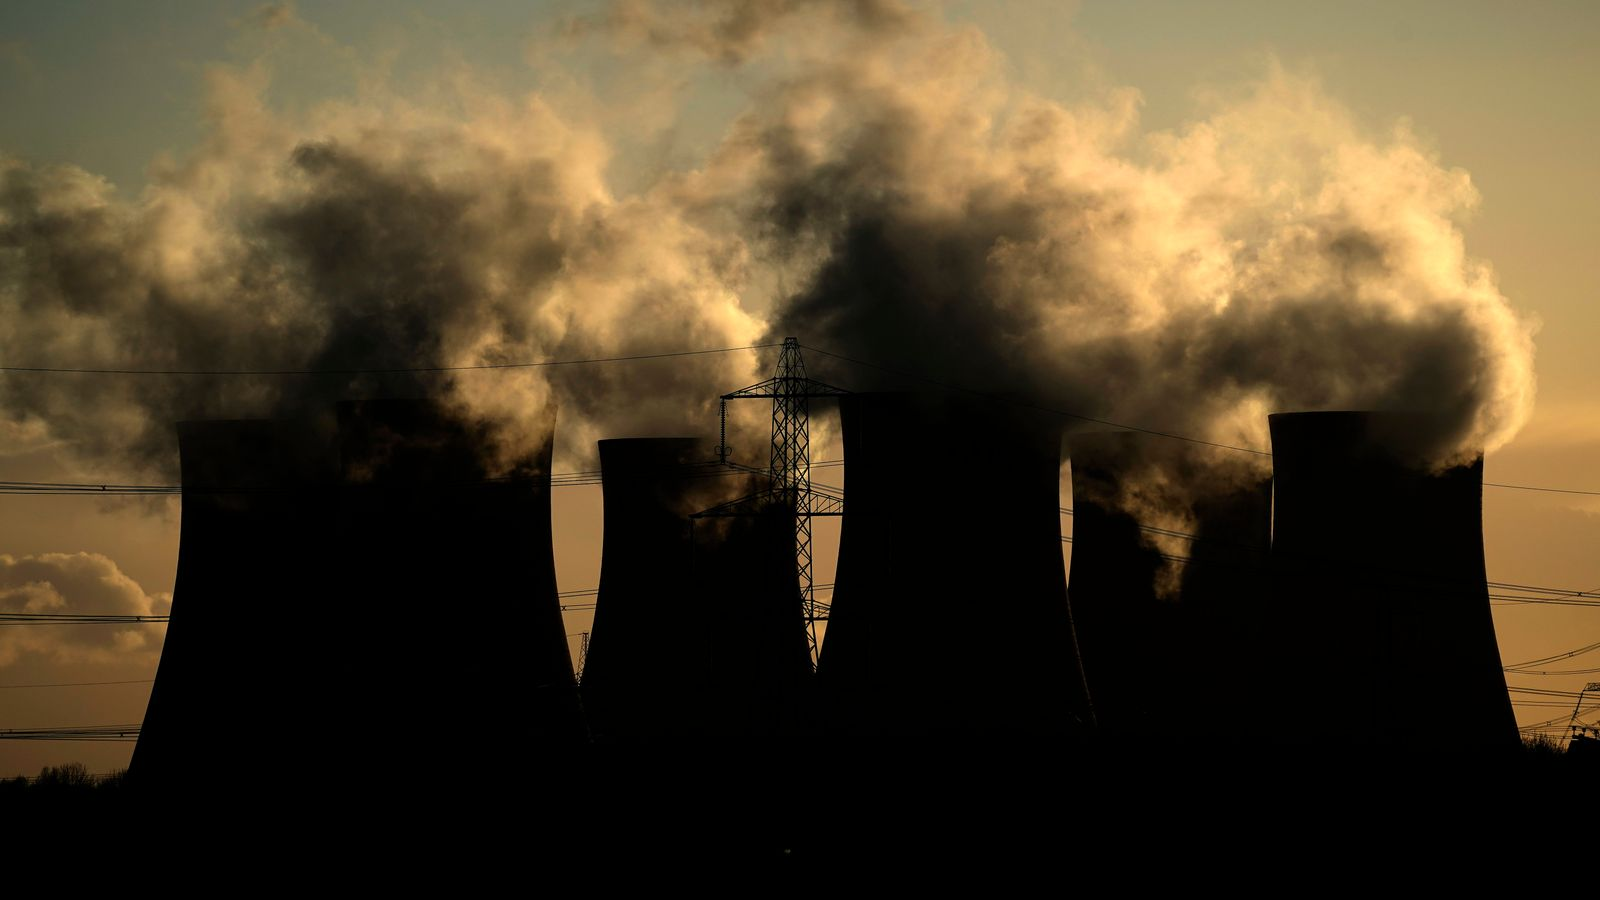 Coronavirus: Carbon emissions fall by more than a third in lockdown | Climate News | Sky News